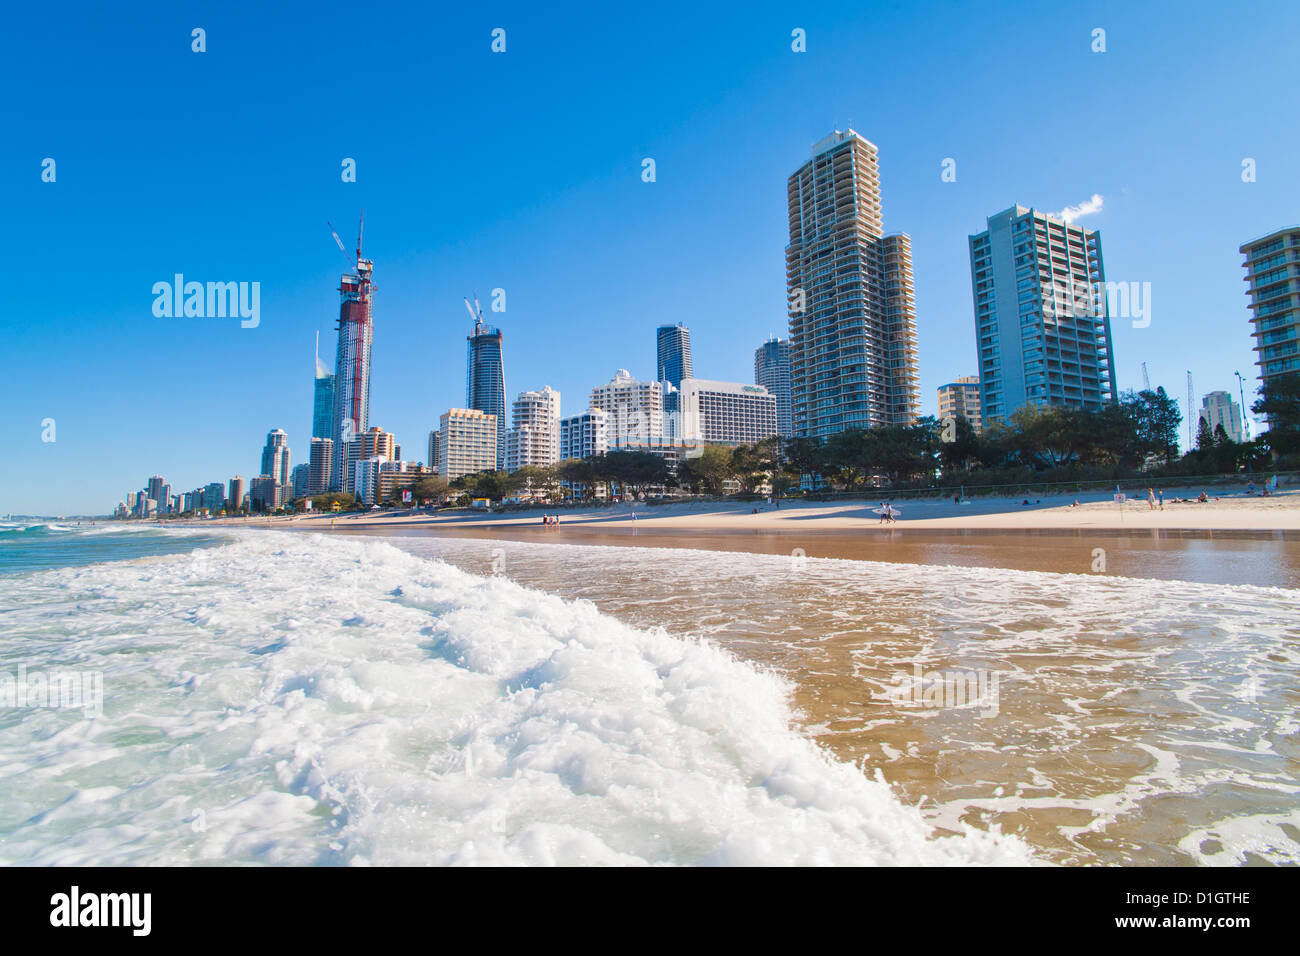 Surfers Paradise beach and high rise buildings, the Gold Coast, Queensland, Australia, Pacific - Stock Image